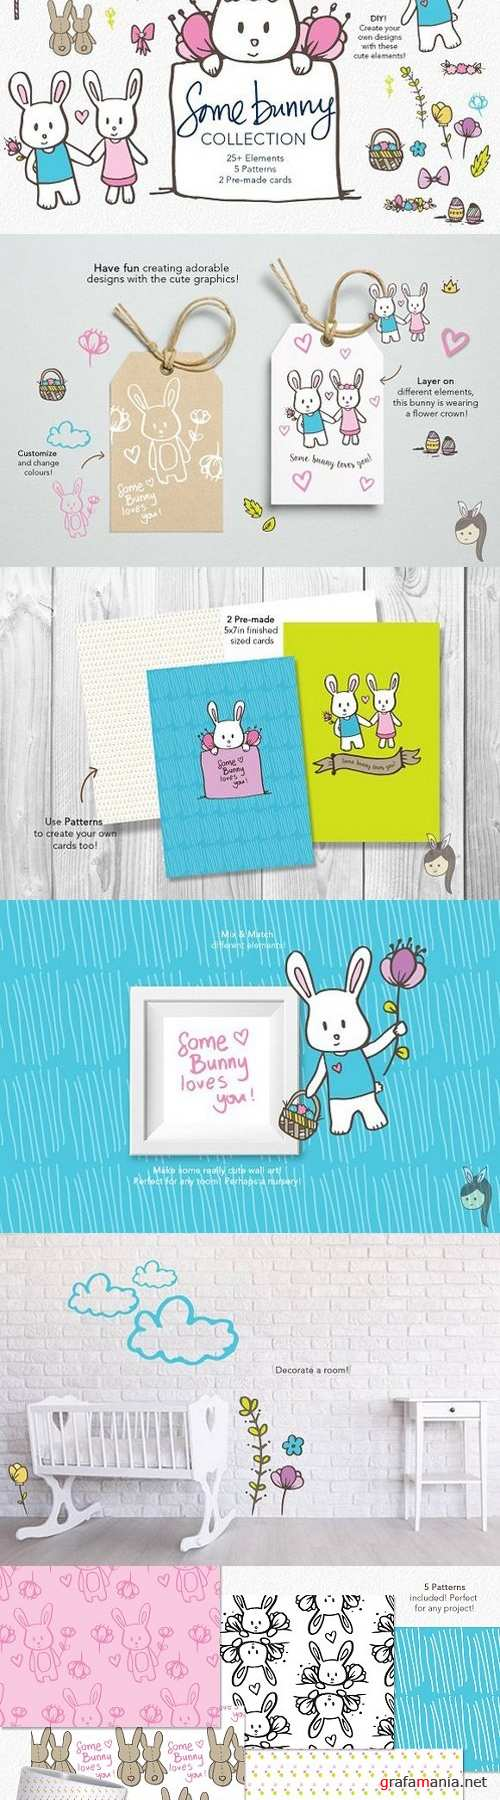 Some Bunny Collection 1361609